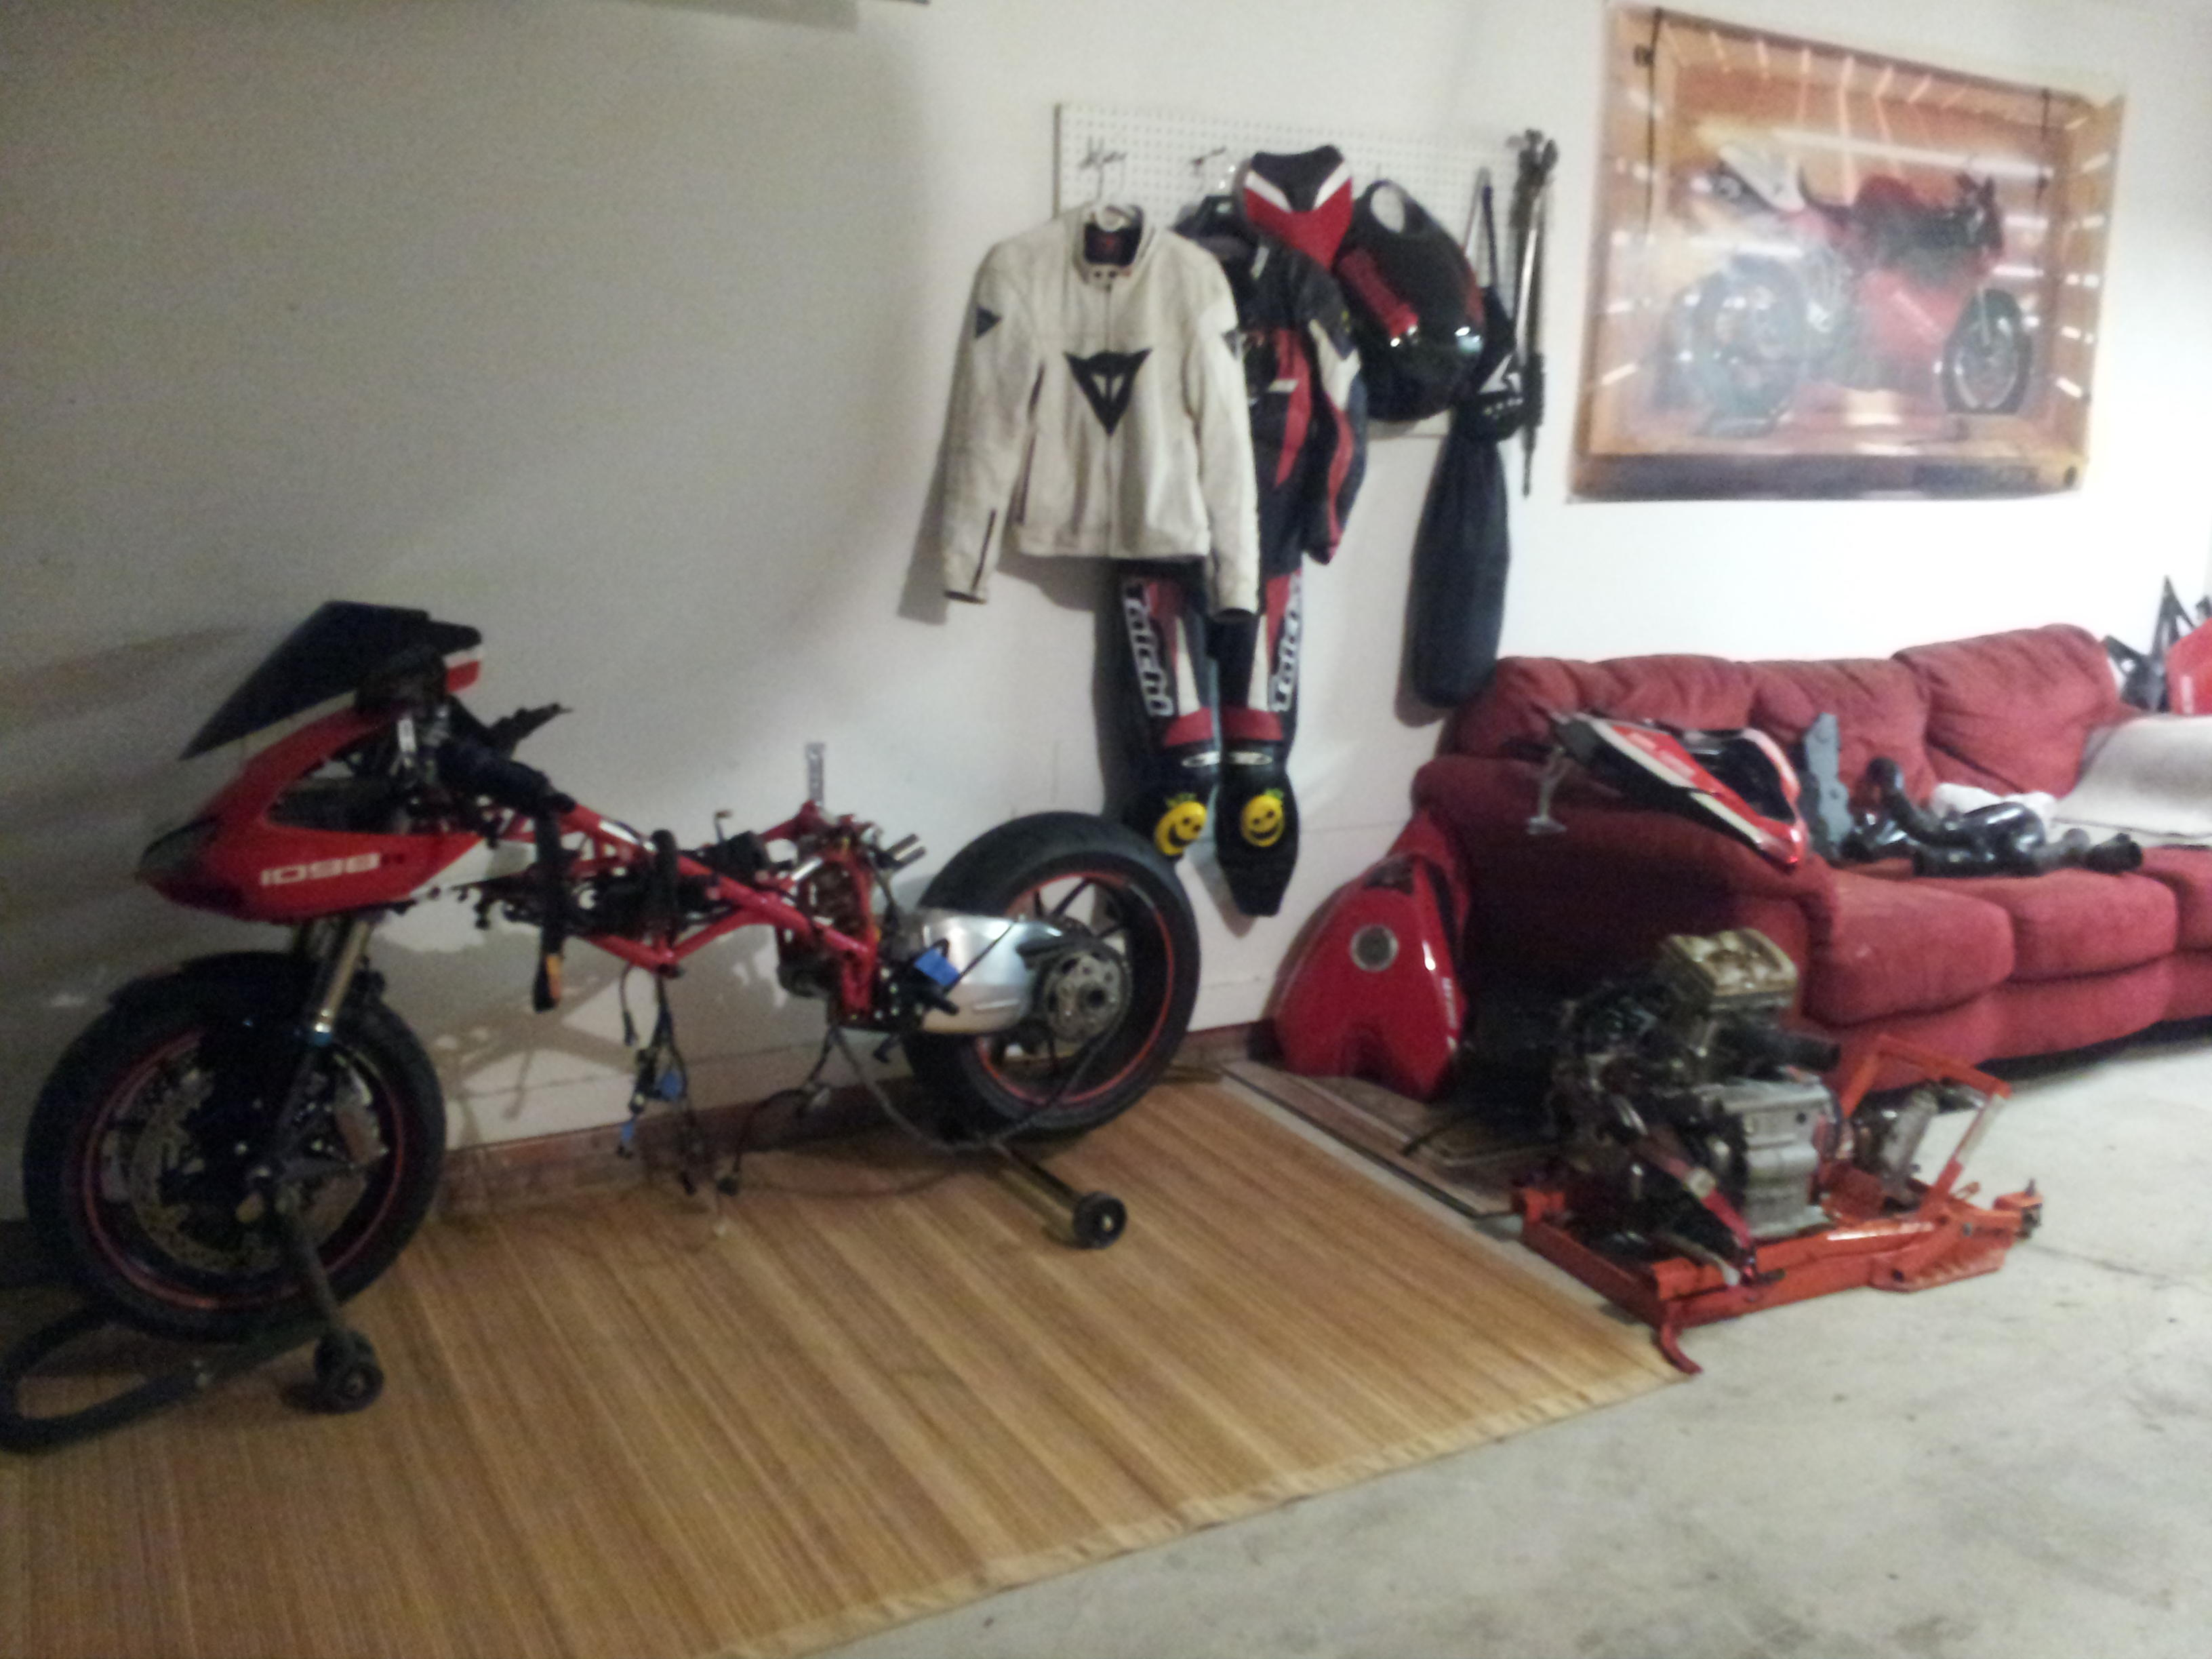 1098 engine tear down and rebuild for dummies - ducati forum